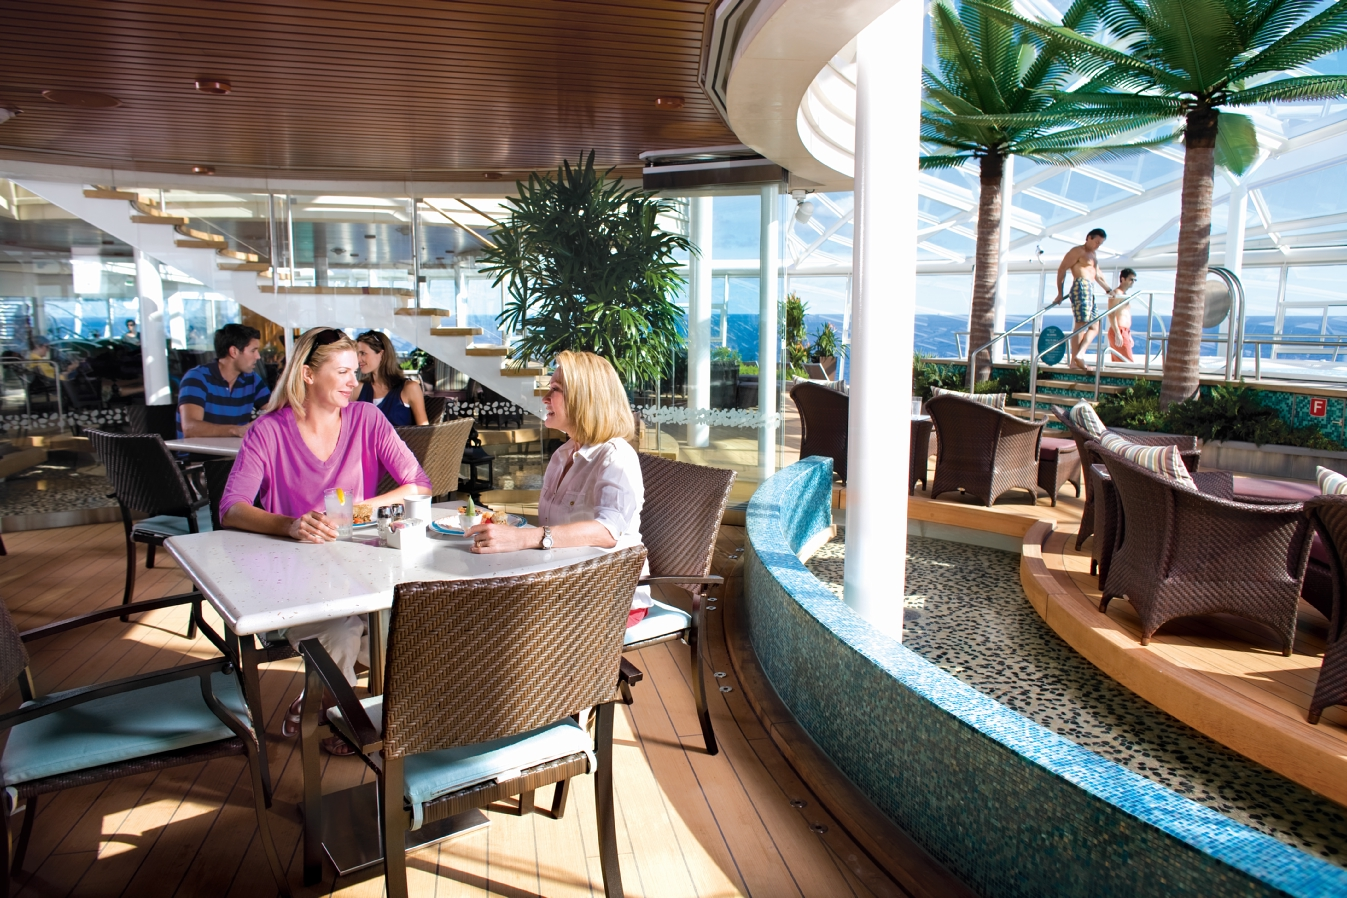 Sheer Luxury on the Largest Cruise Ship, Allure of the Seas 18